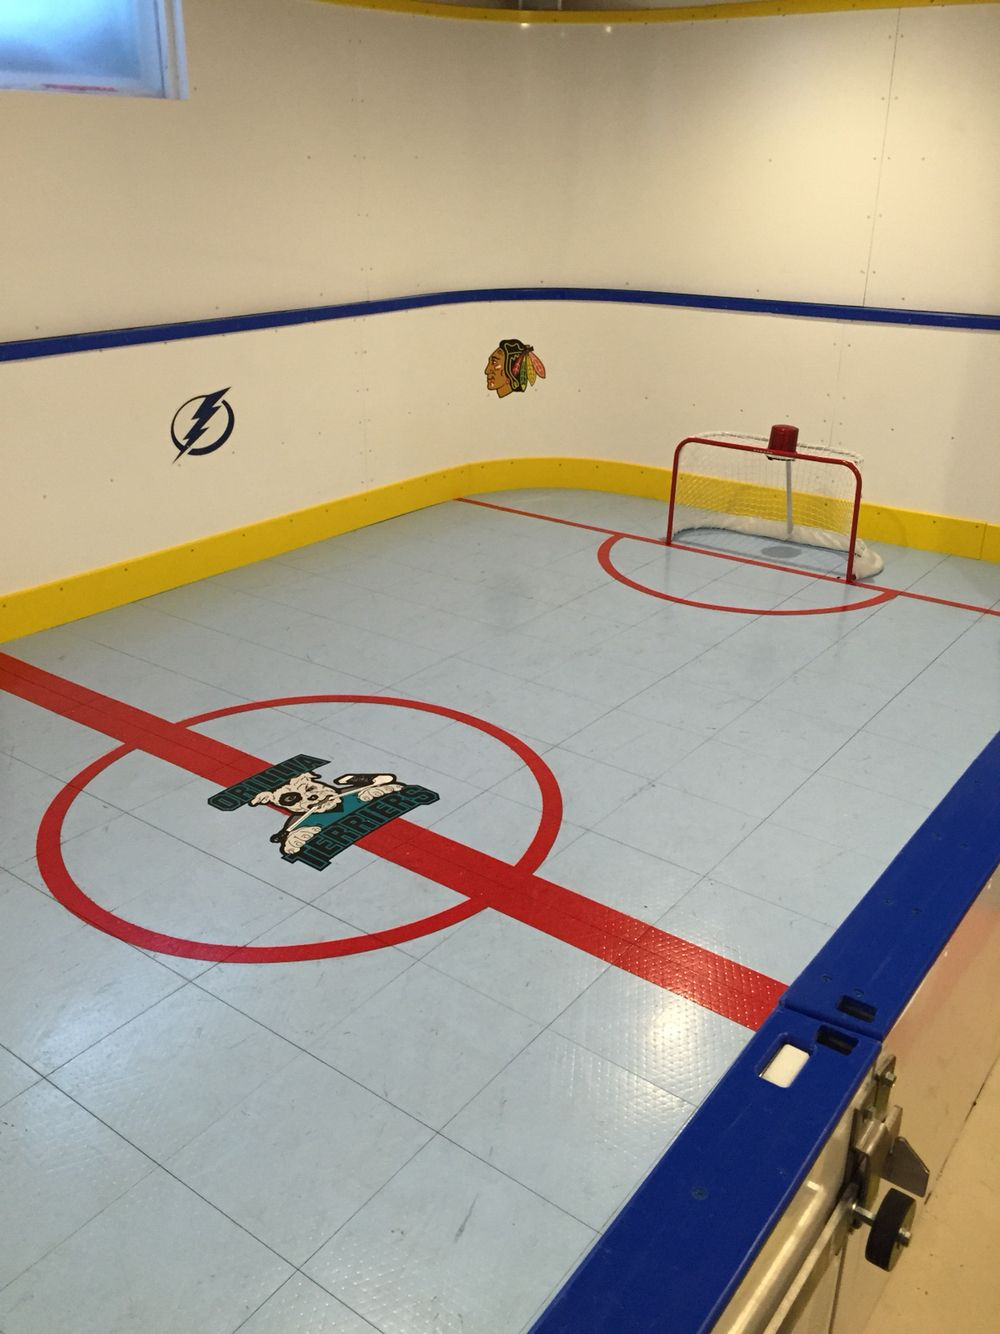 Basement hockey rink with a sport court floor for the home basement hockey rink with a sport court floor for the home pinterest basements hockey and hockey room dailygadgetfo Gallery